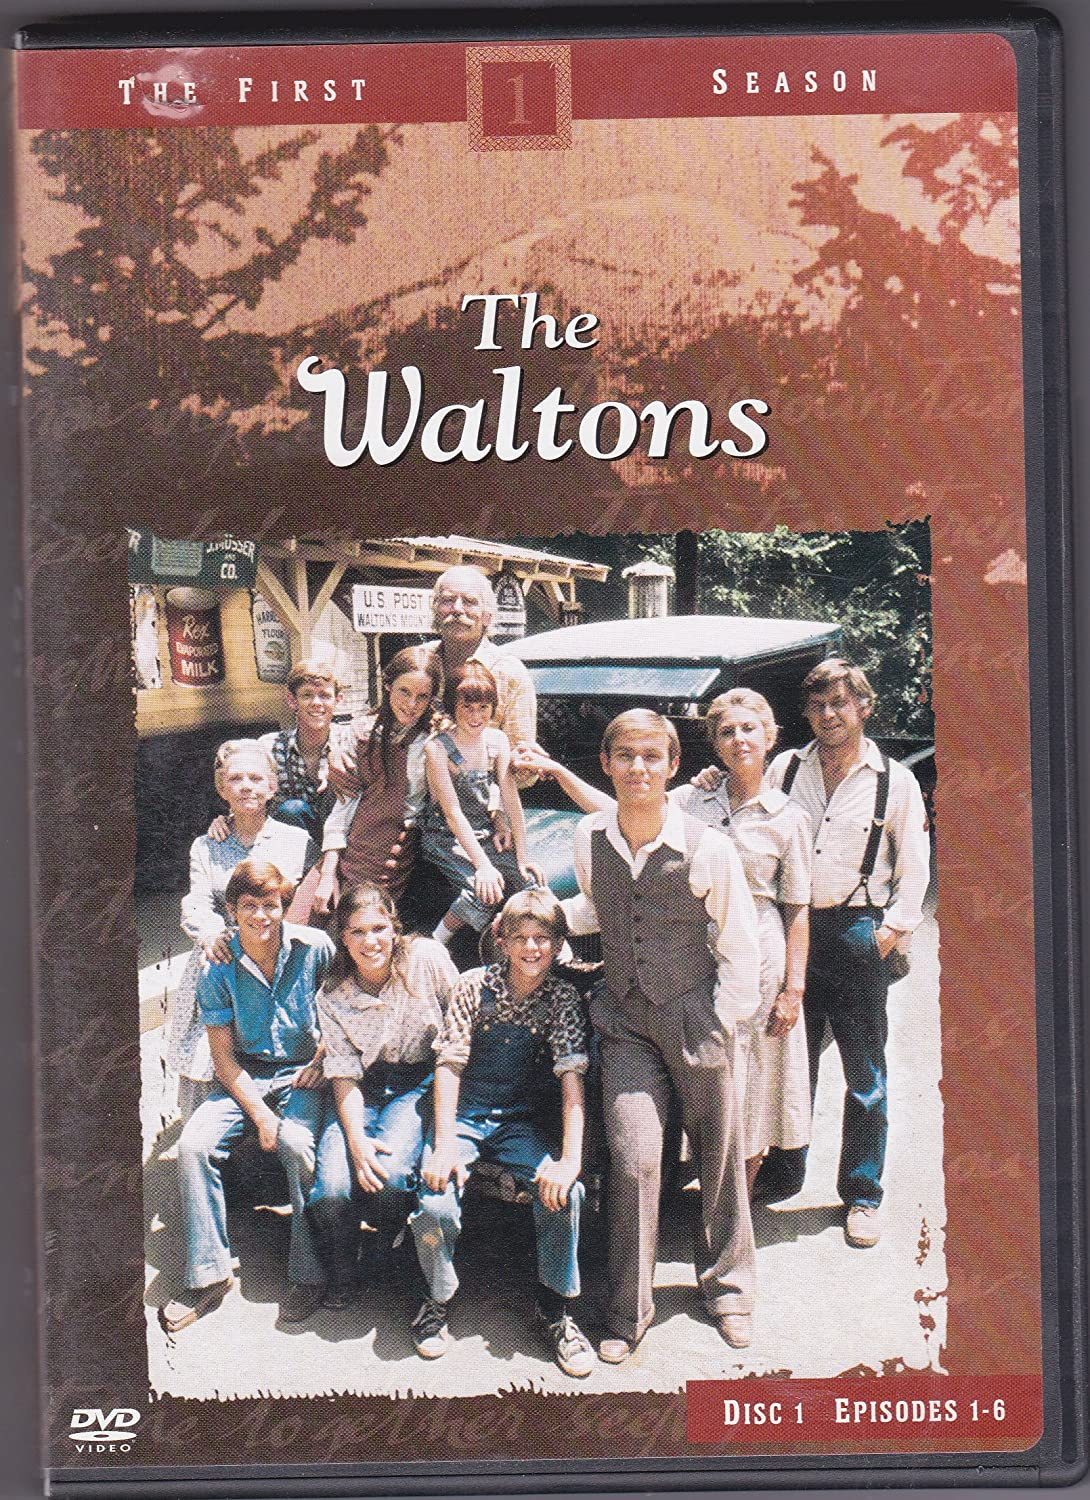 The First Season Disc 1 Episodes 1-6 The Waltons